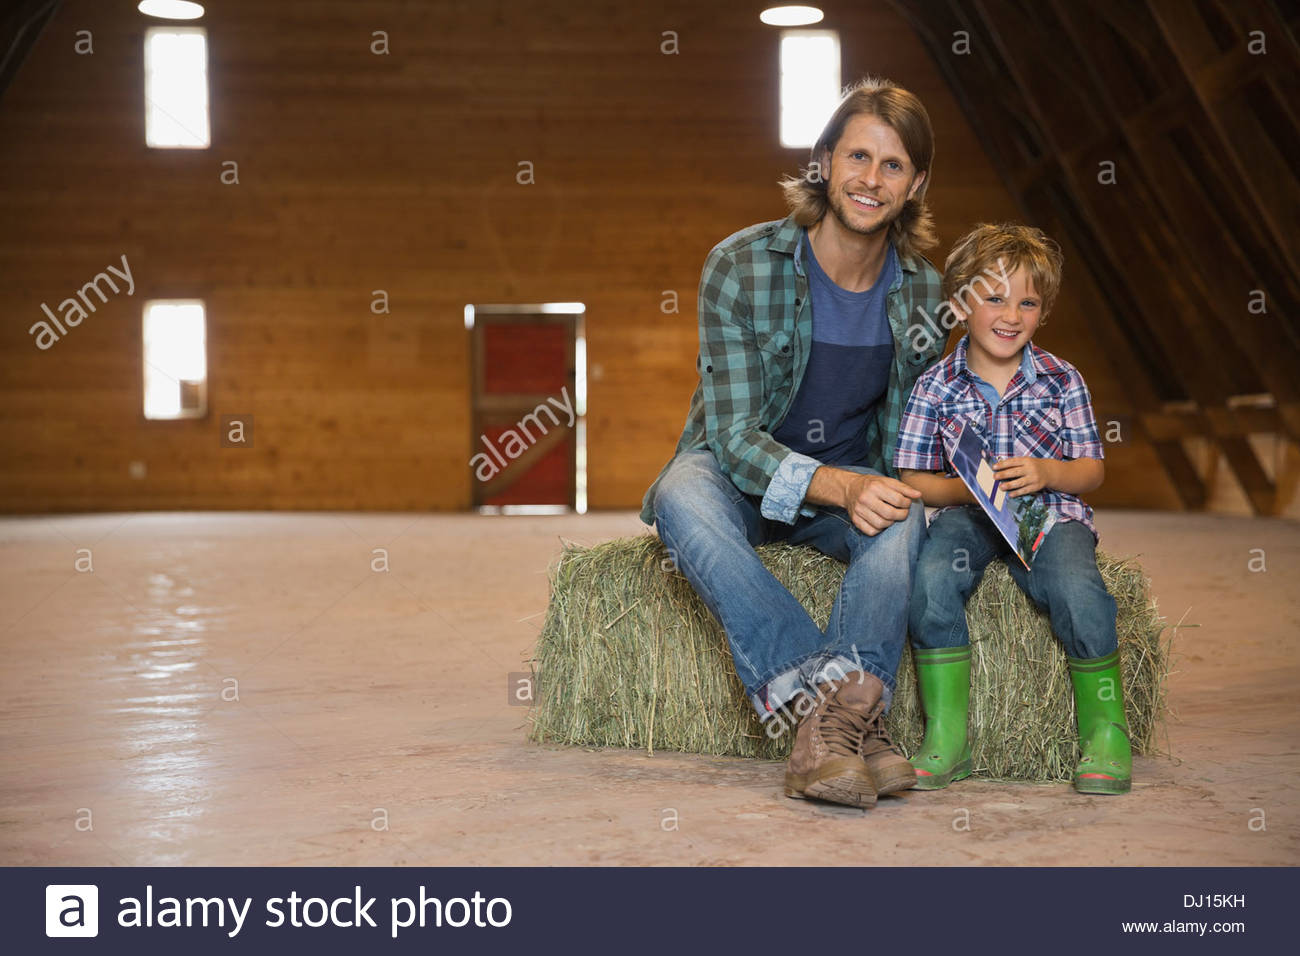 Full length portrait of father and son sitting on hay bale in barn - Stock Image